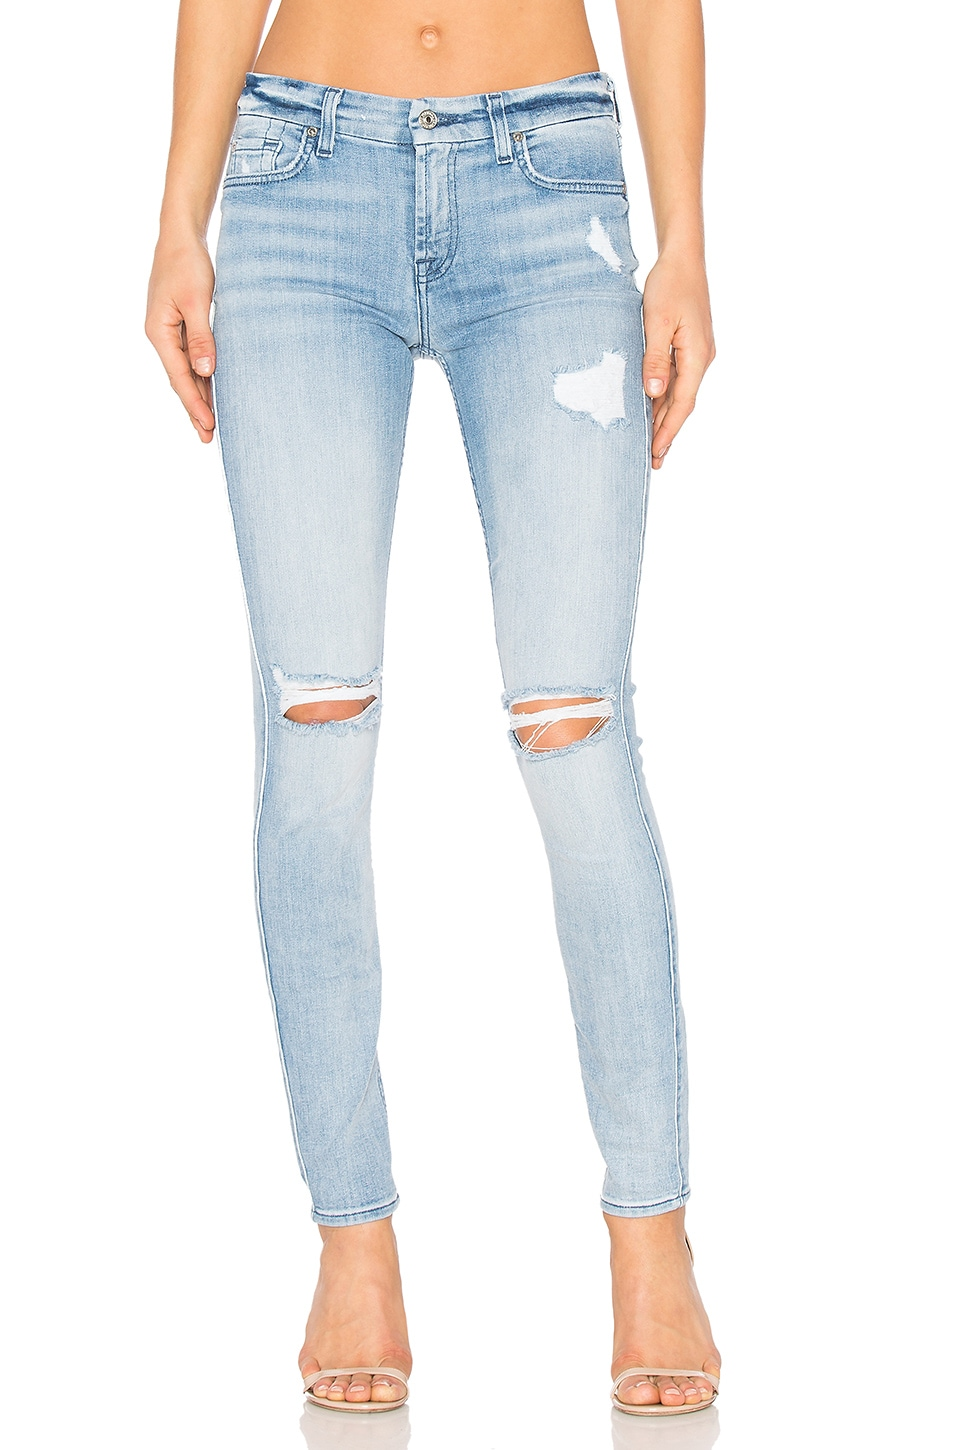 The Destroy Ankle Skinny by 7 For All Mankind